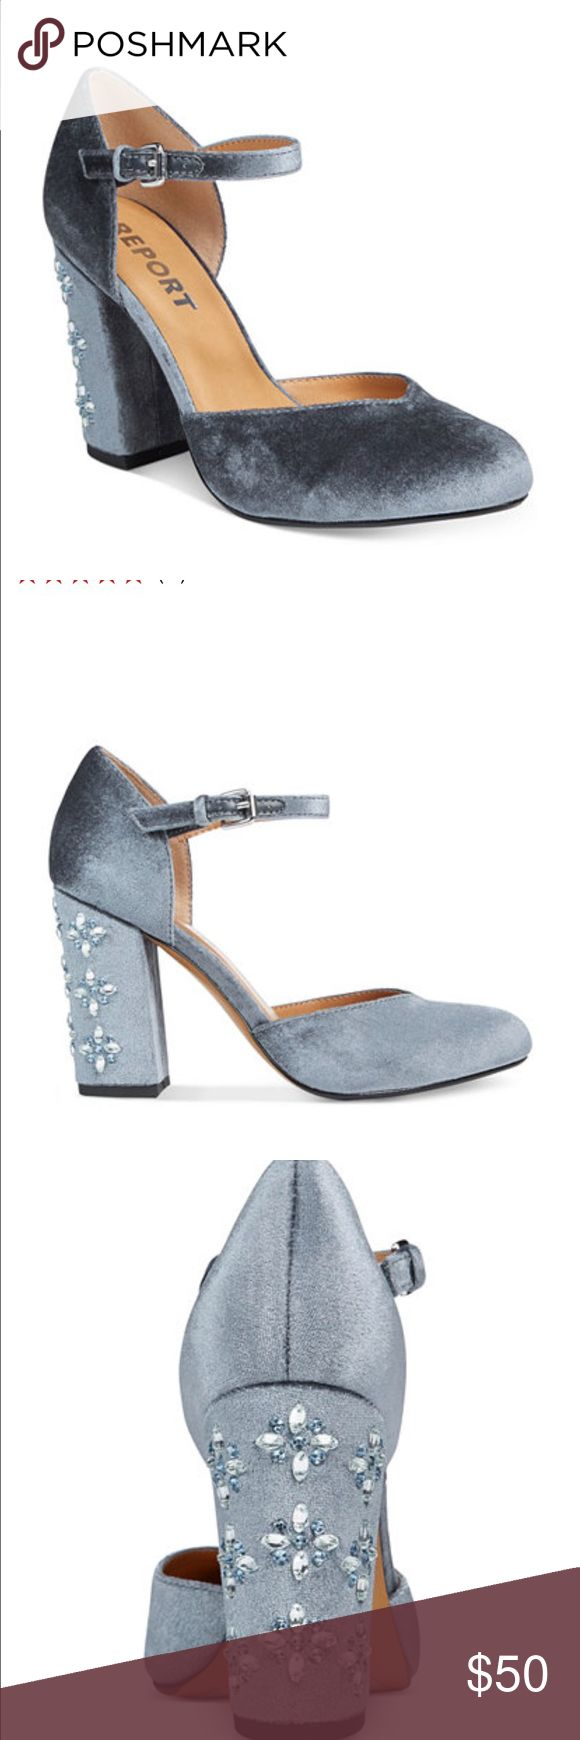 Report Ladee 2 pics embellished block -hell Pumps Brand new with box Report Ladee 2 pics embellished block -hell Pumps light blue velvet color size 9 with 3 3/4 heel & adjustable buckle closure at ankle strap. Report Ladee Shoes Heels